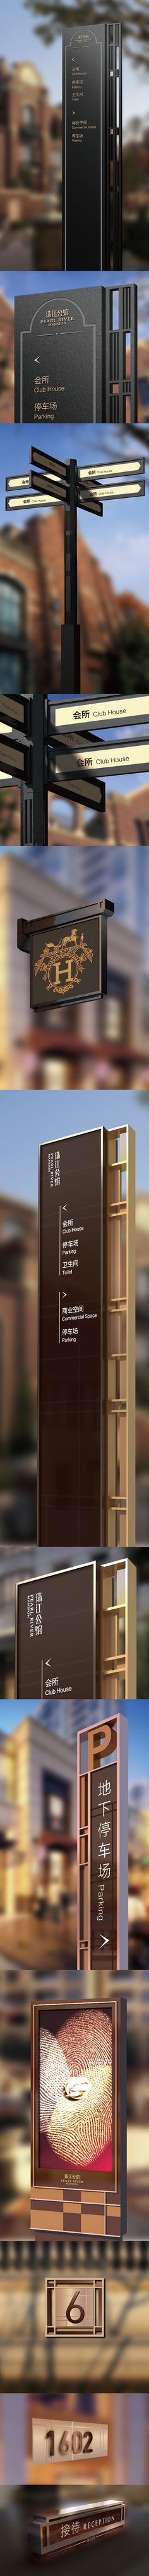 Pearl River mansion on Behance Directional Signage, Wayfinding Signs, Environmental Graphic Design, Environmental Graphics, School Signage, Hotel Signage, Navigation Design, Sign System, Exterior Signage